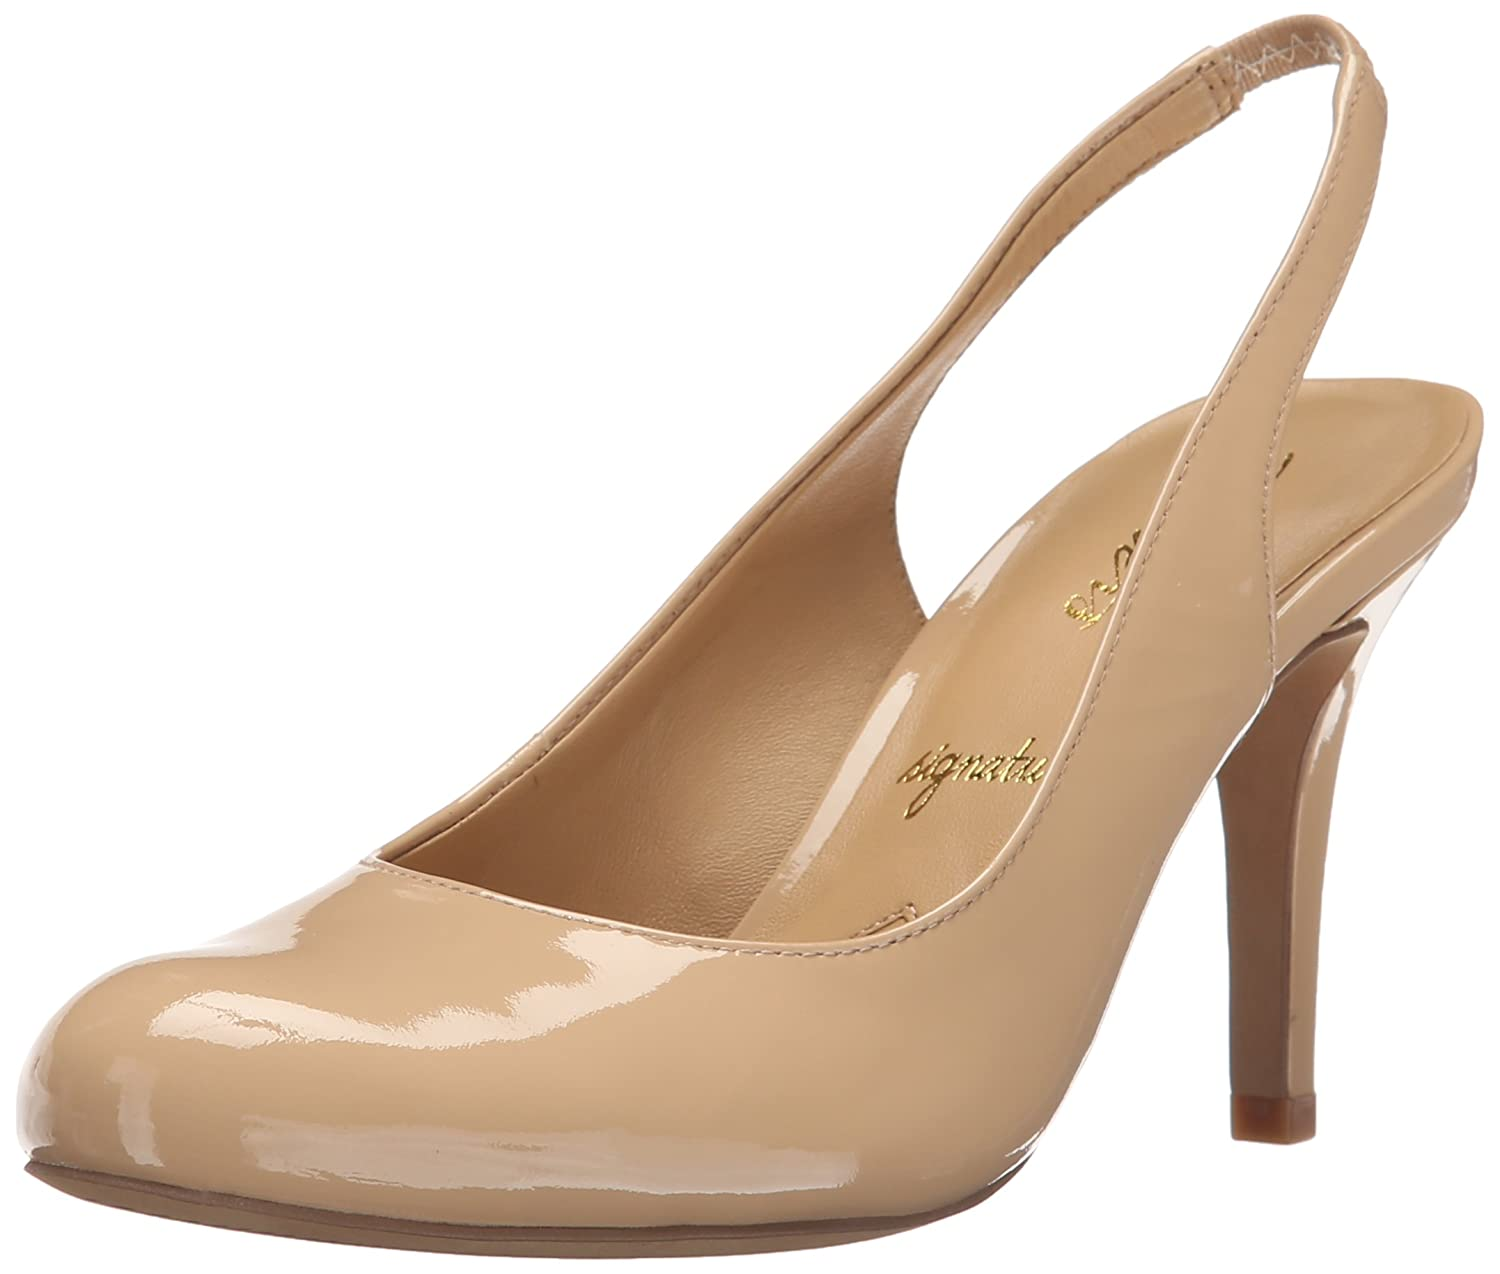 Trotters Women's Gidget Dress Pump B011EZNYJI 9.5 W US|Nude